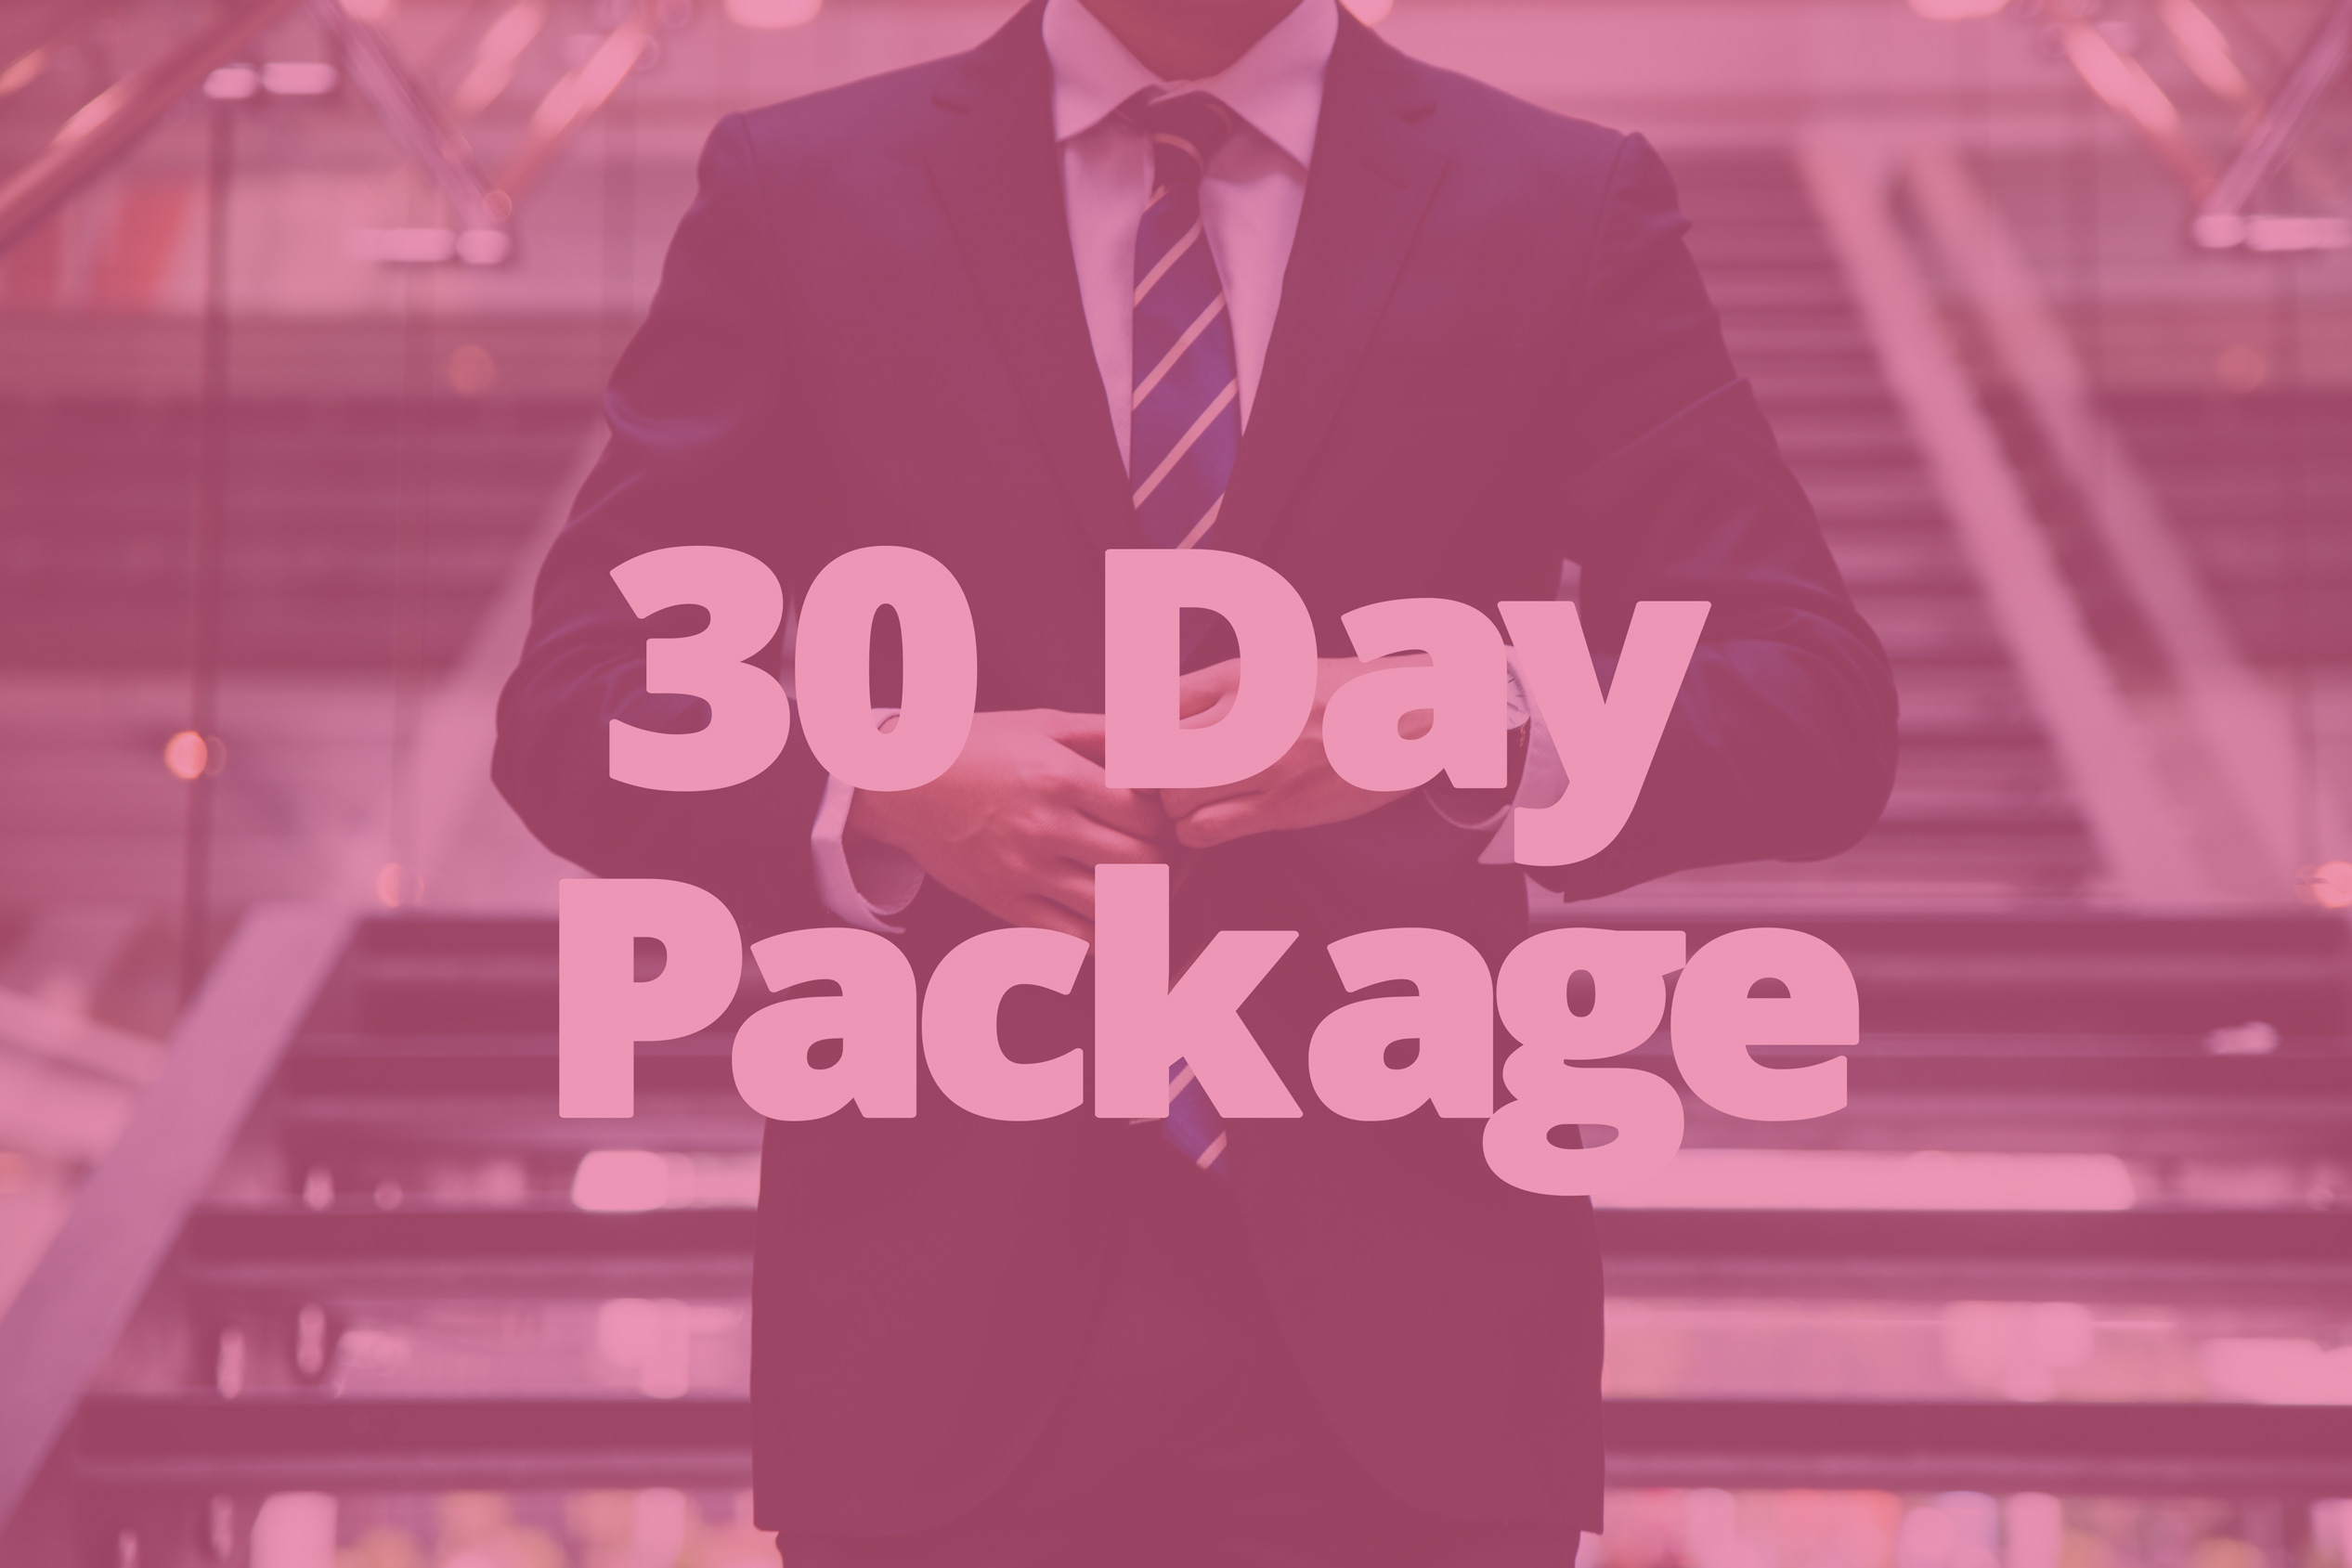 30daypackage